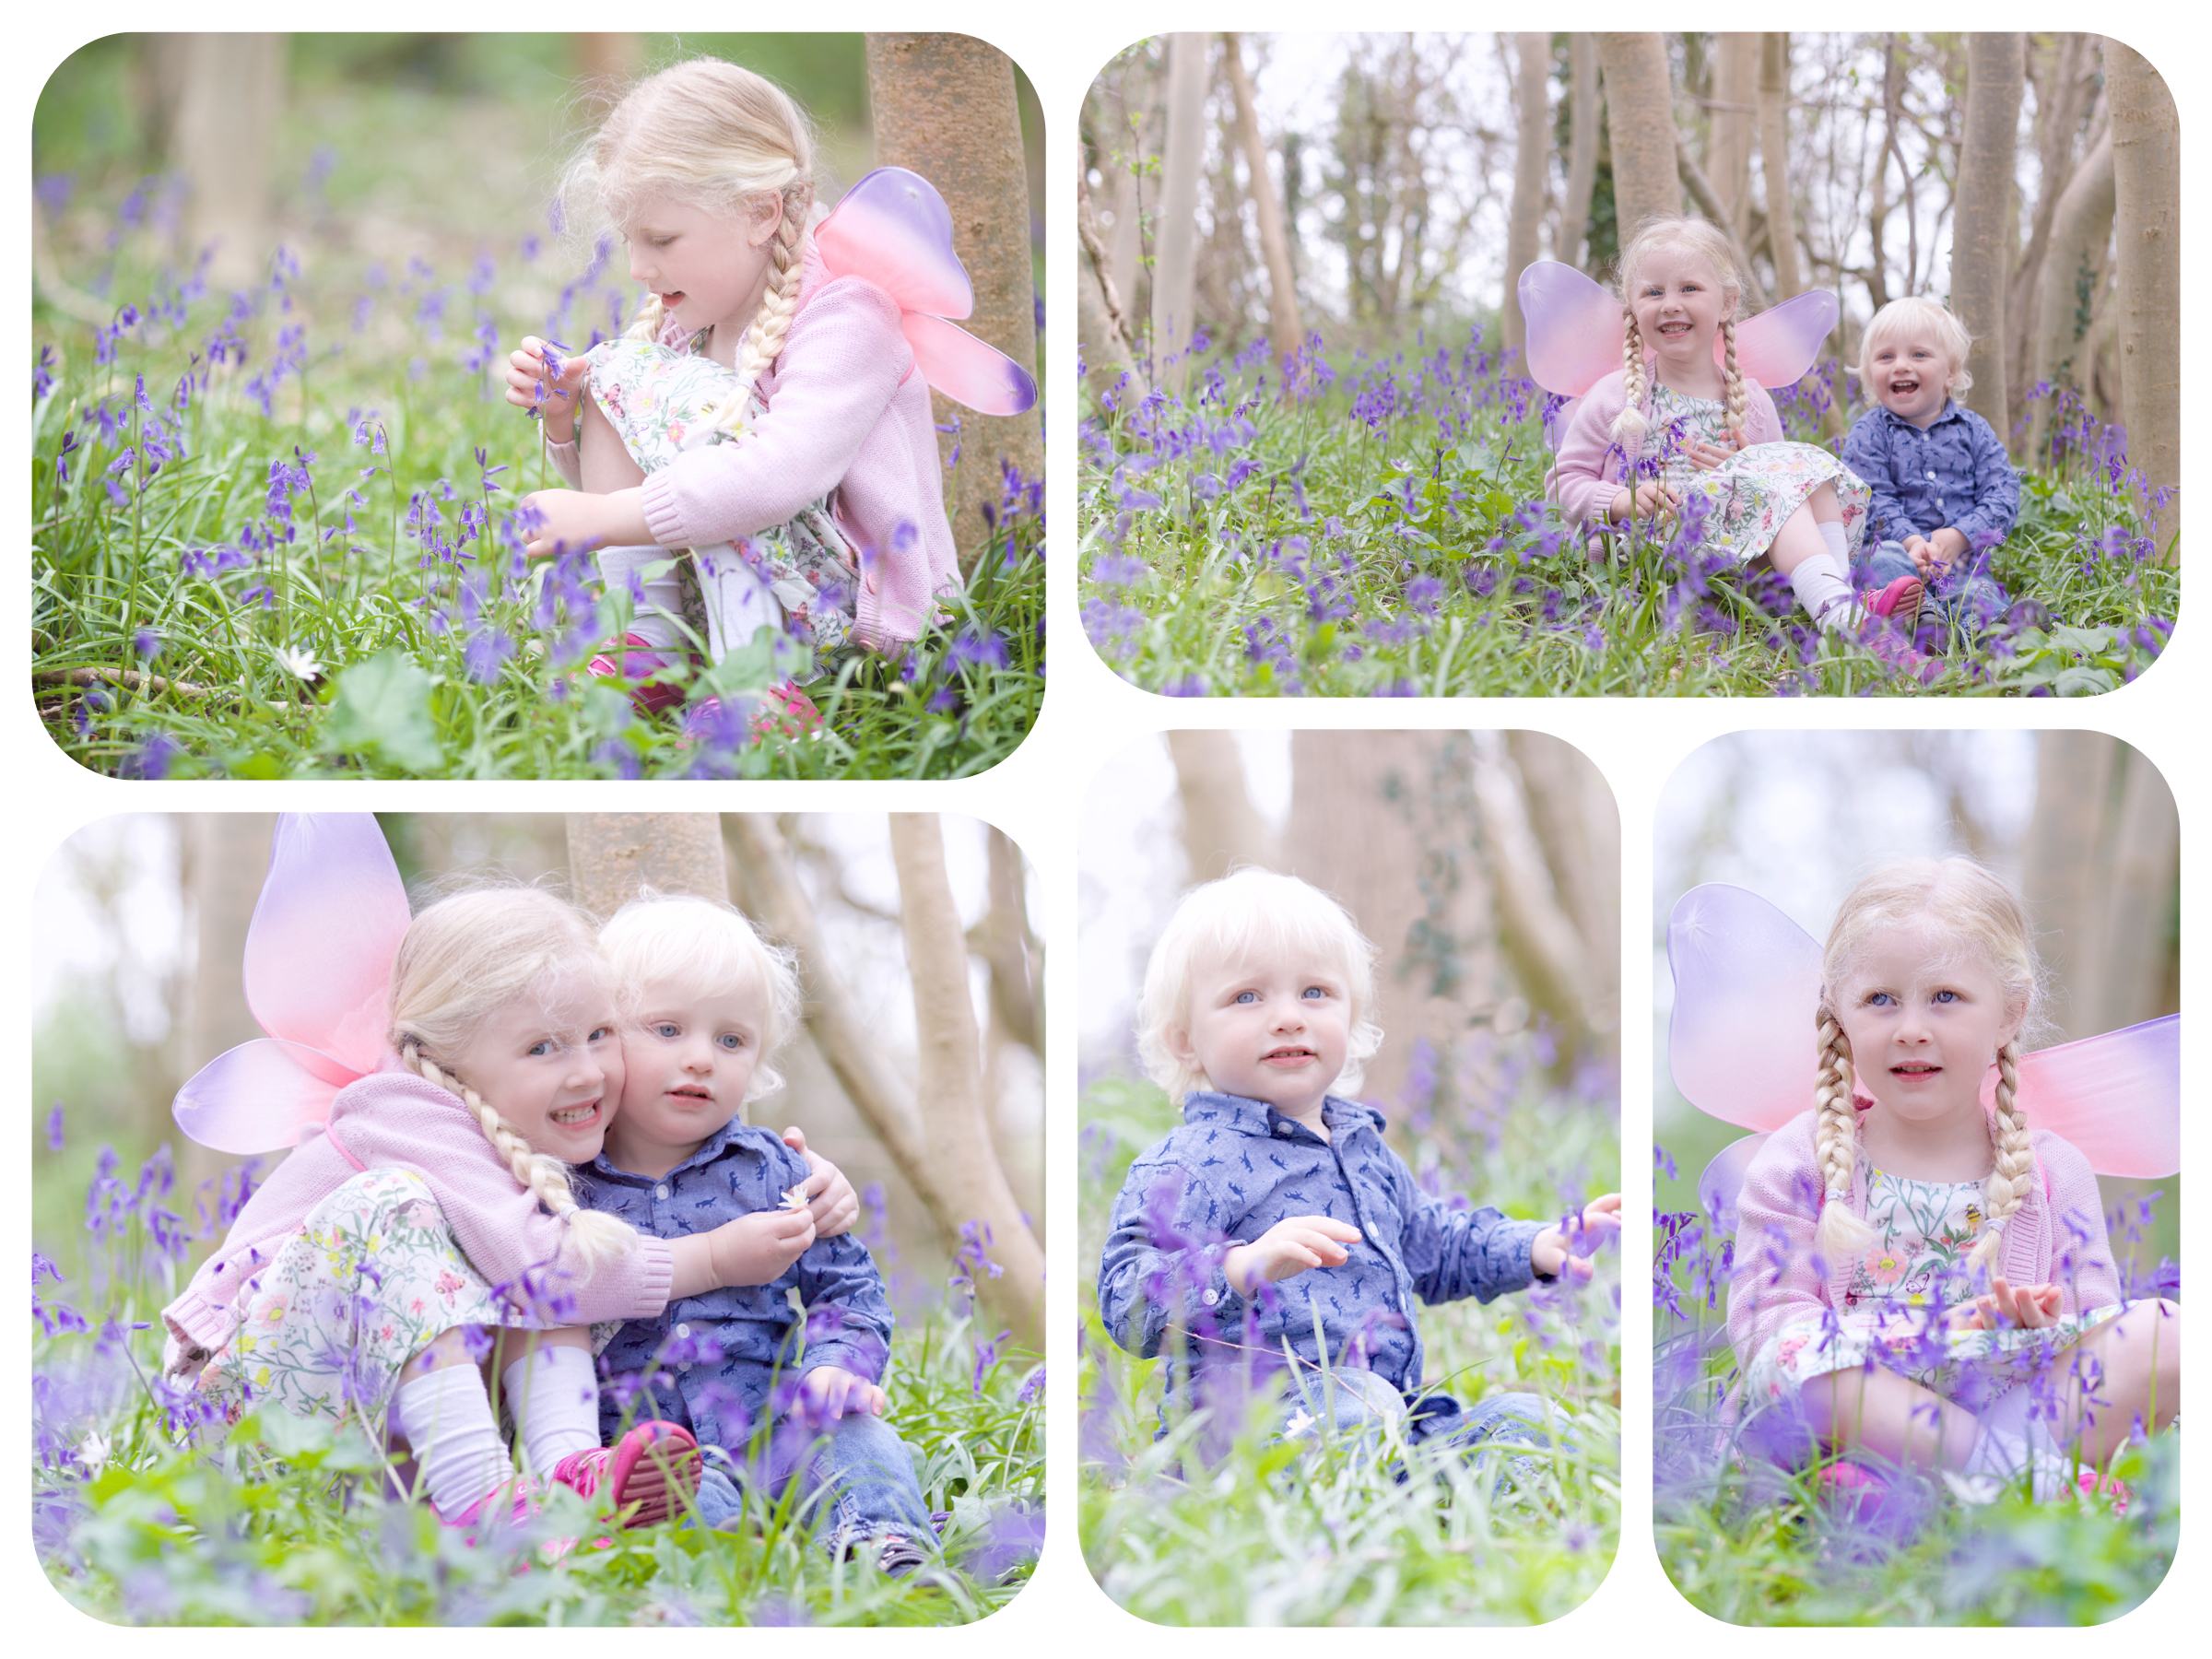 Molly & Oscar Bluebells Collage